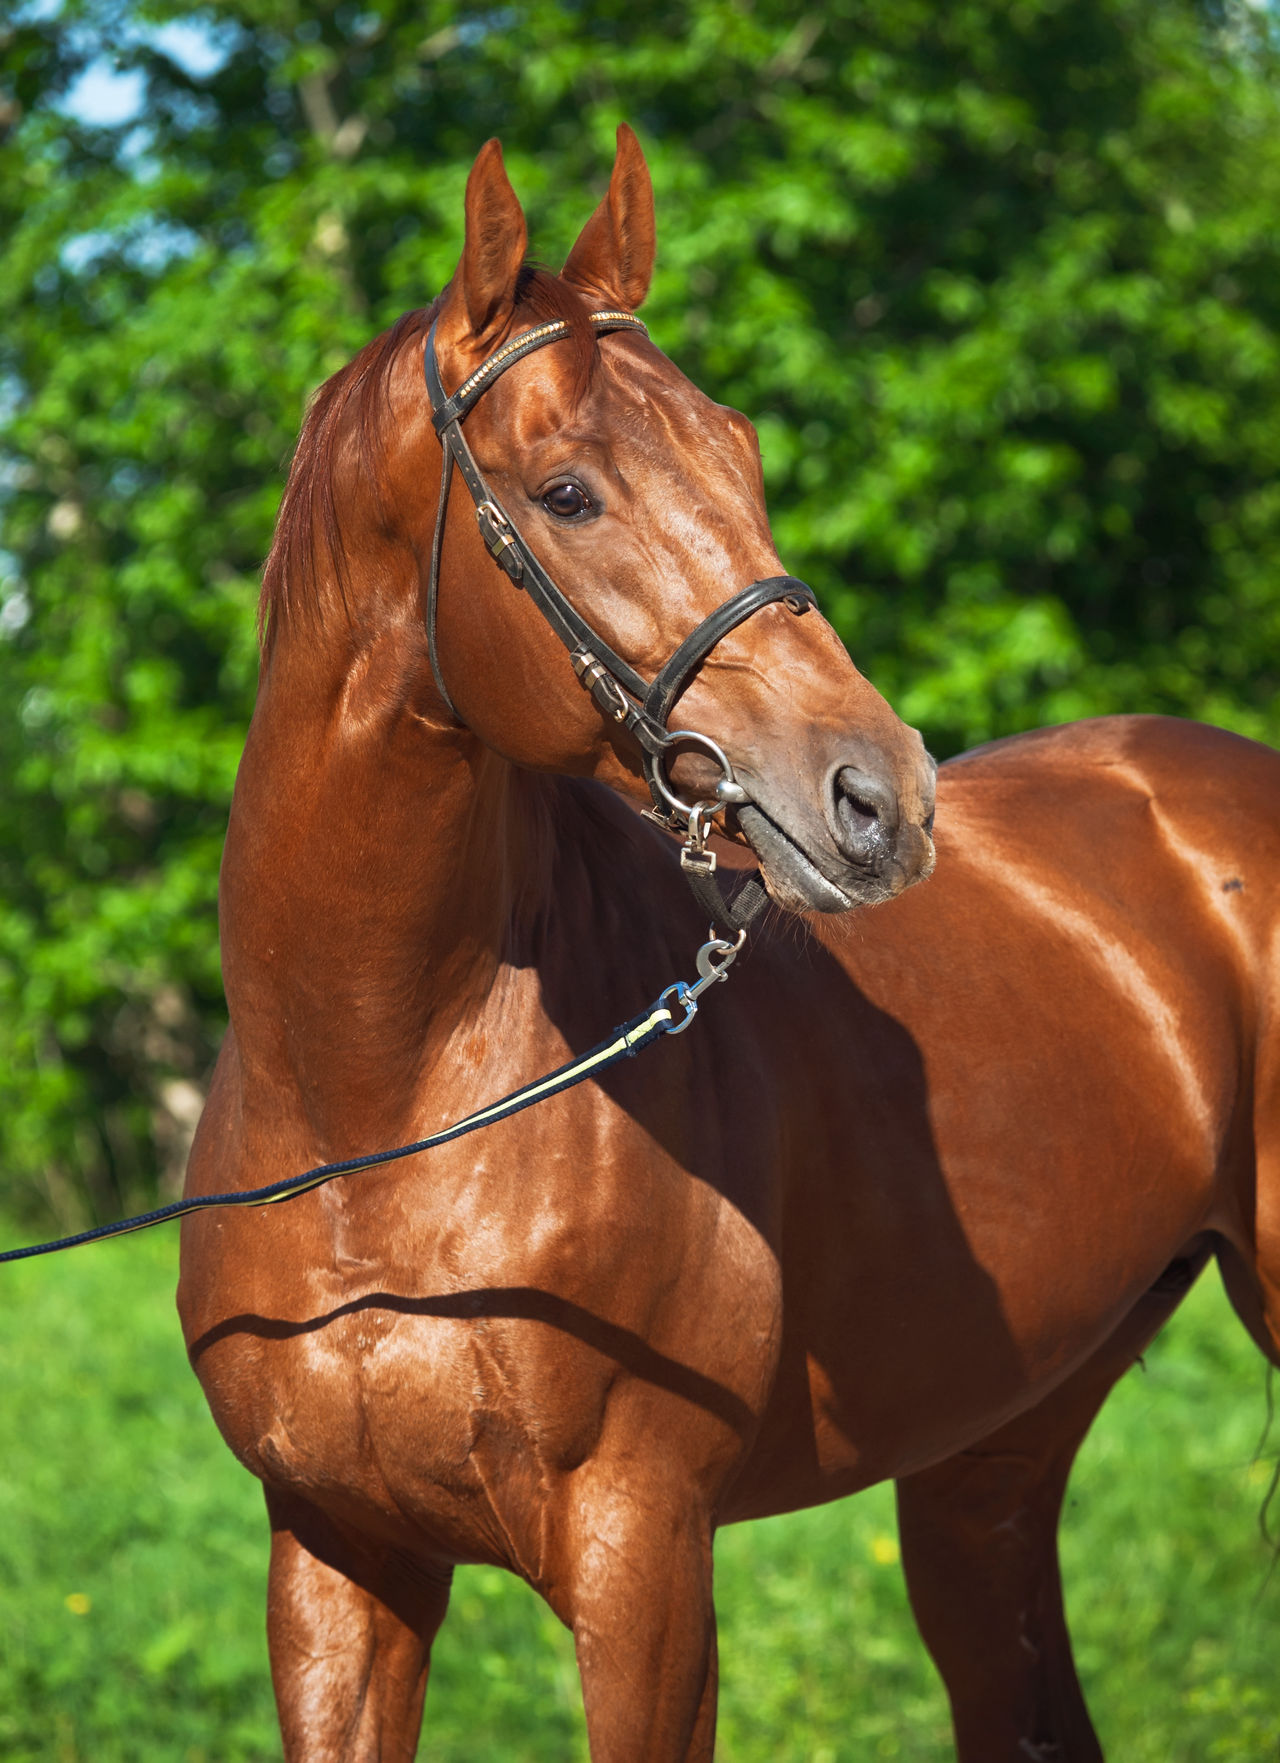 portrait of beautiful sportive red horse Animal Themes Bridle Chestnut Day Domestic Animals Horse Livestock Mammal Mane Nature No People One Animal Outdoors Sportive Stallion Working Animal